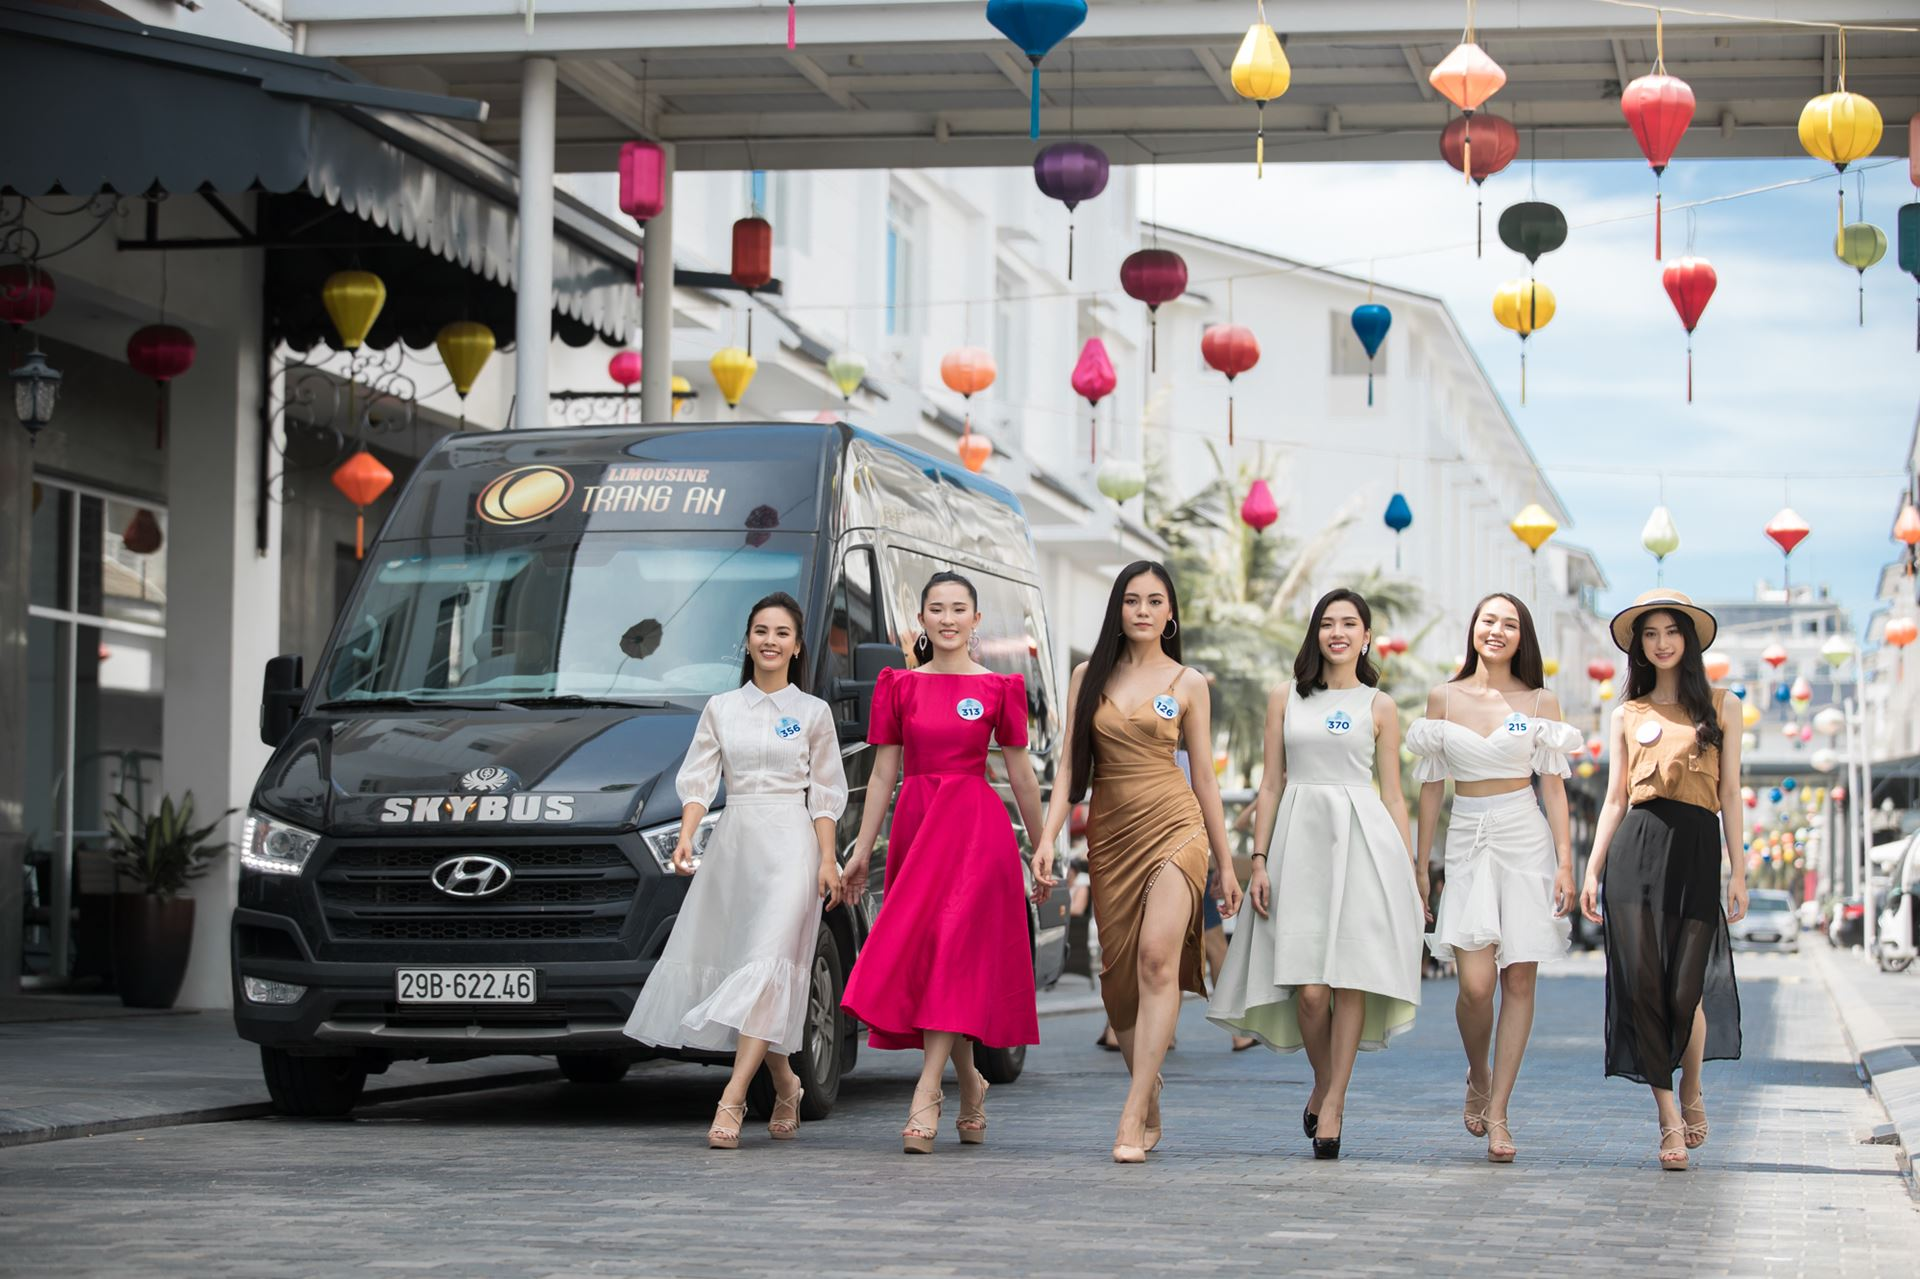 xe limousine Skybus & Miss World Vietnam 2019 - 5